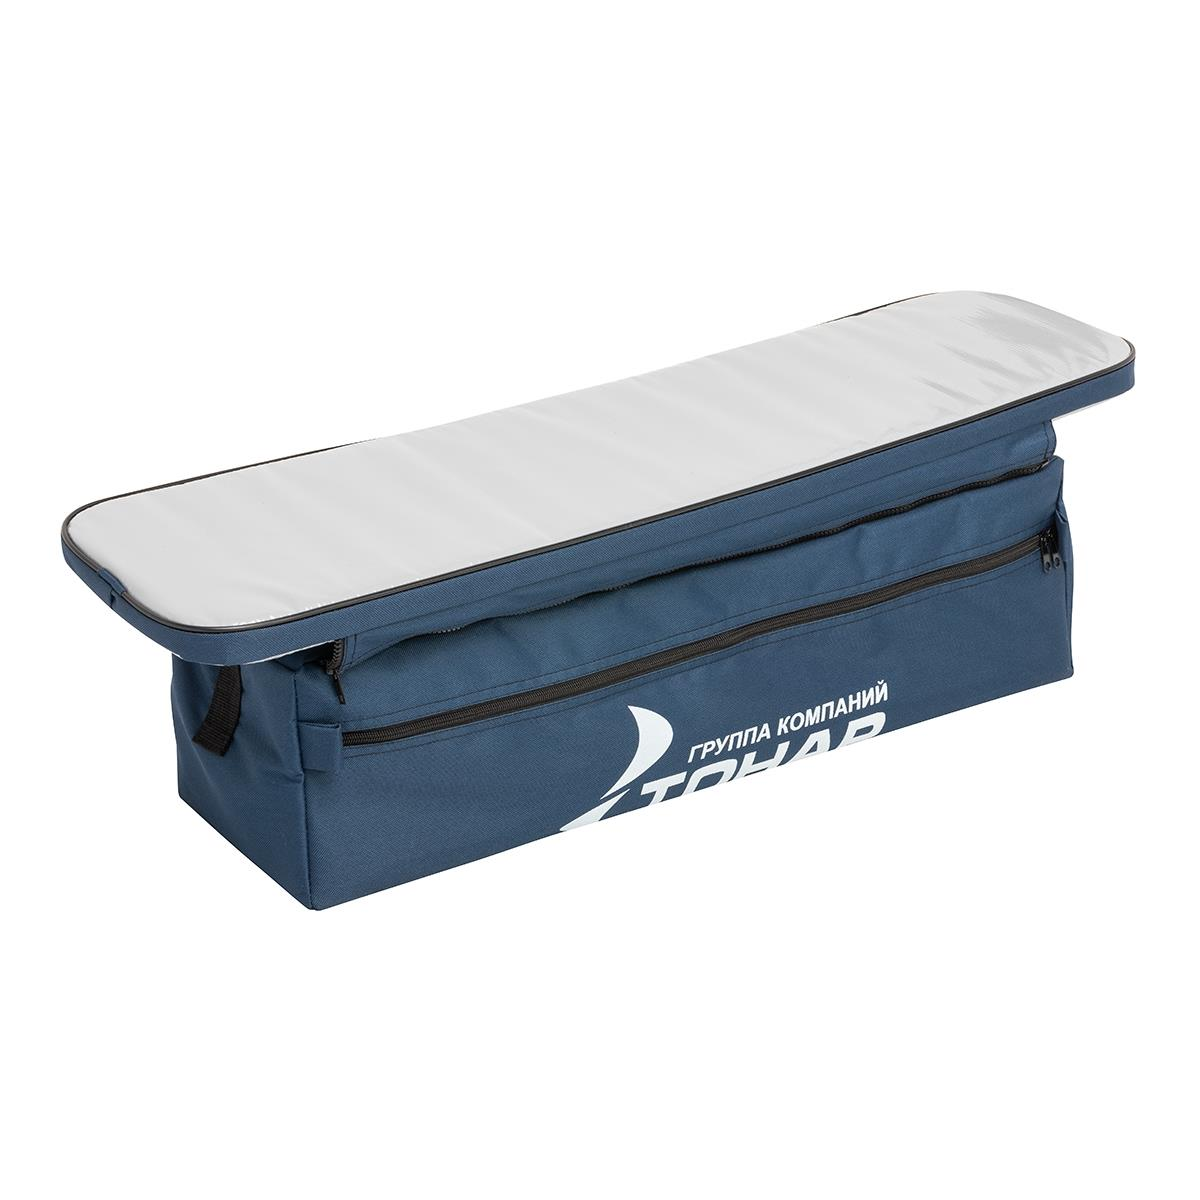 Bag Under The Seat For Boat (length 104 Cm, Blue)